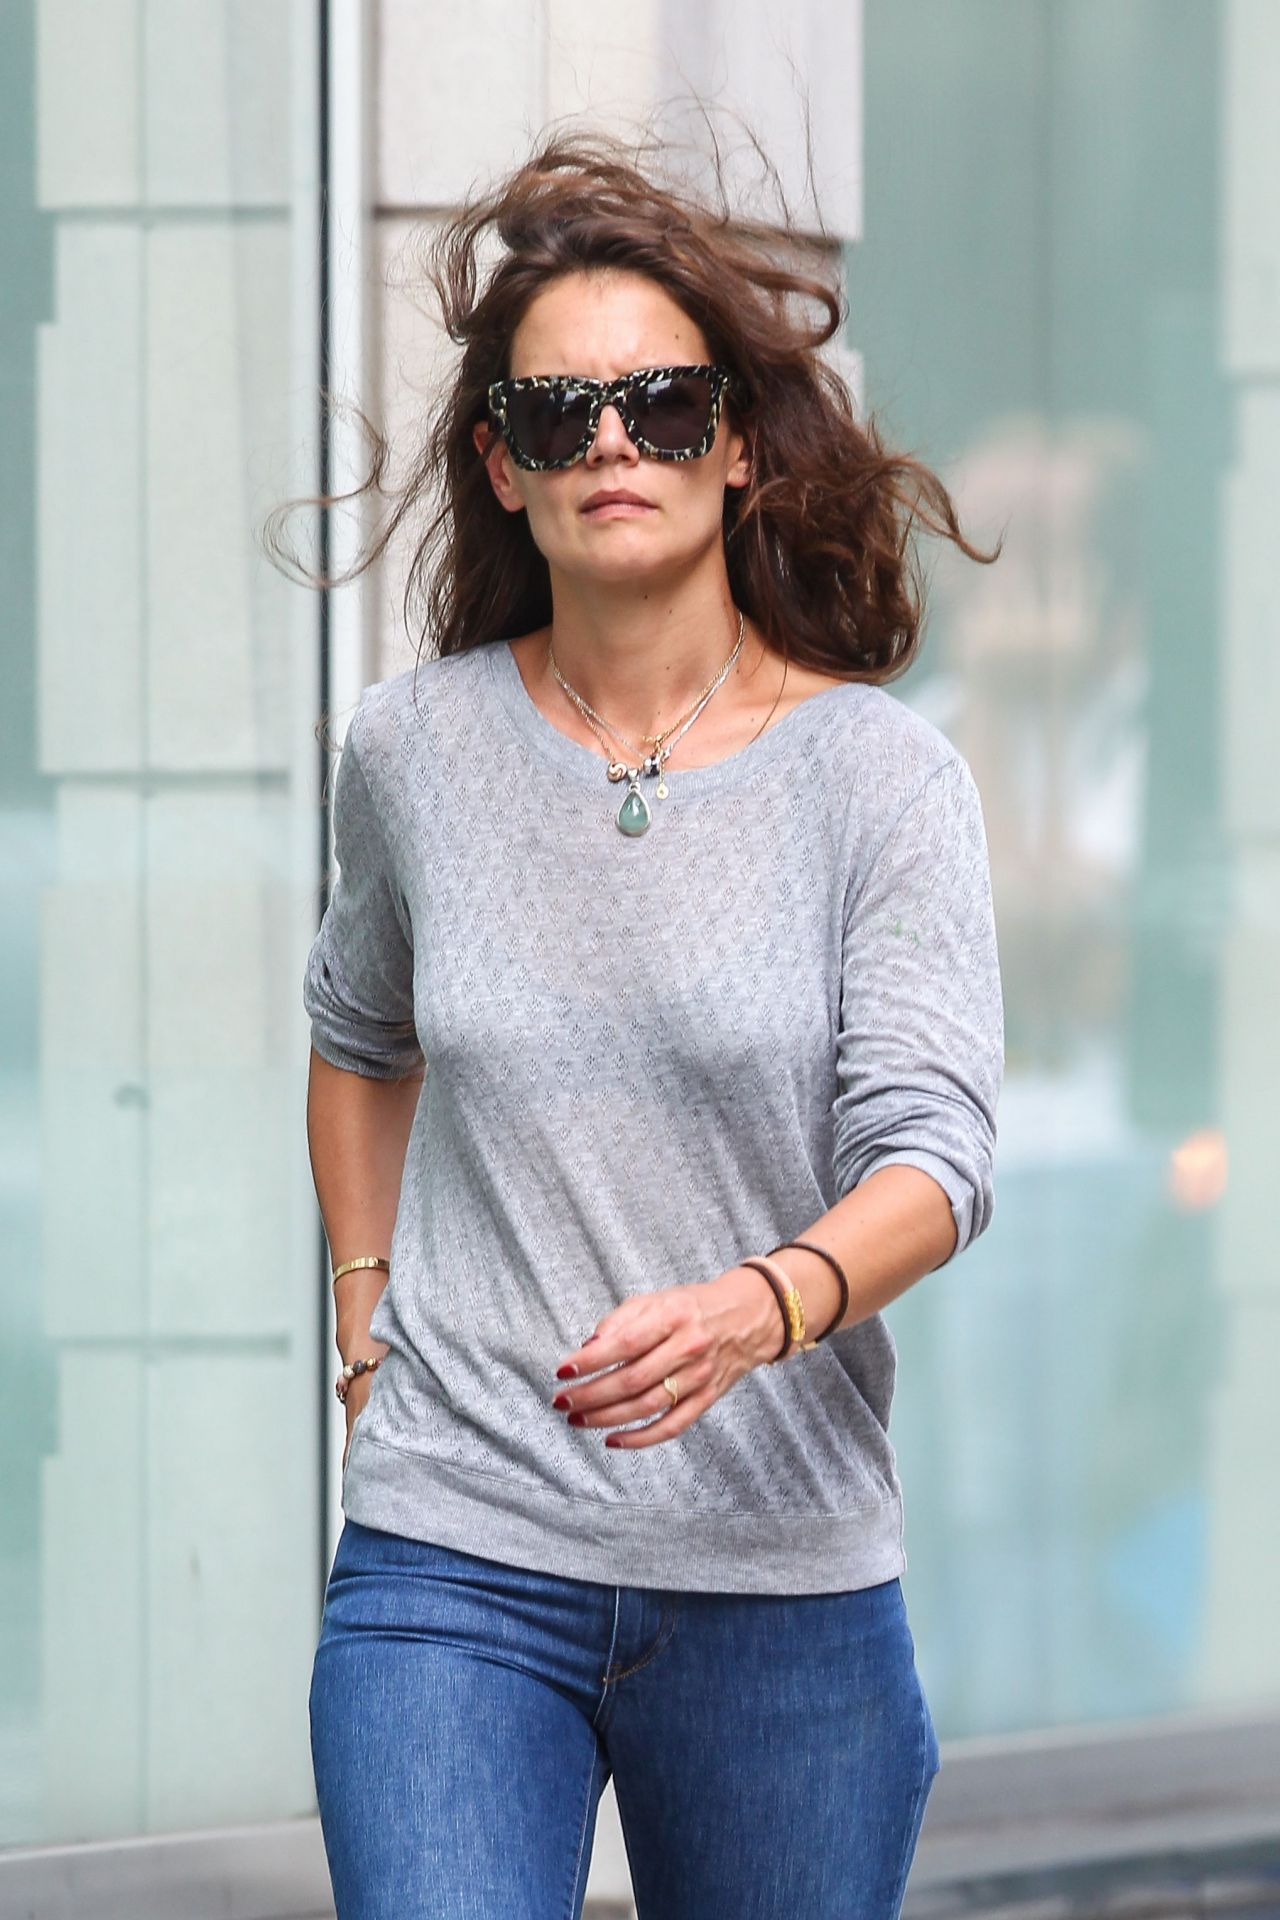 Katie Holmes Tight in Jeans